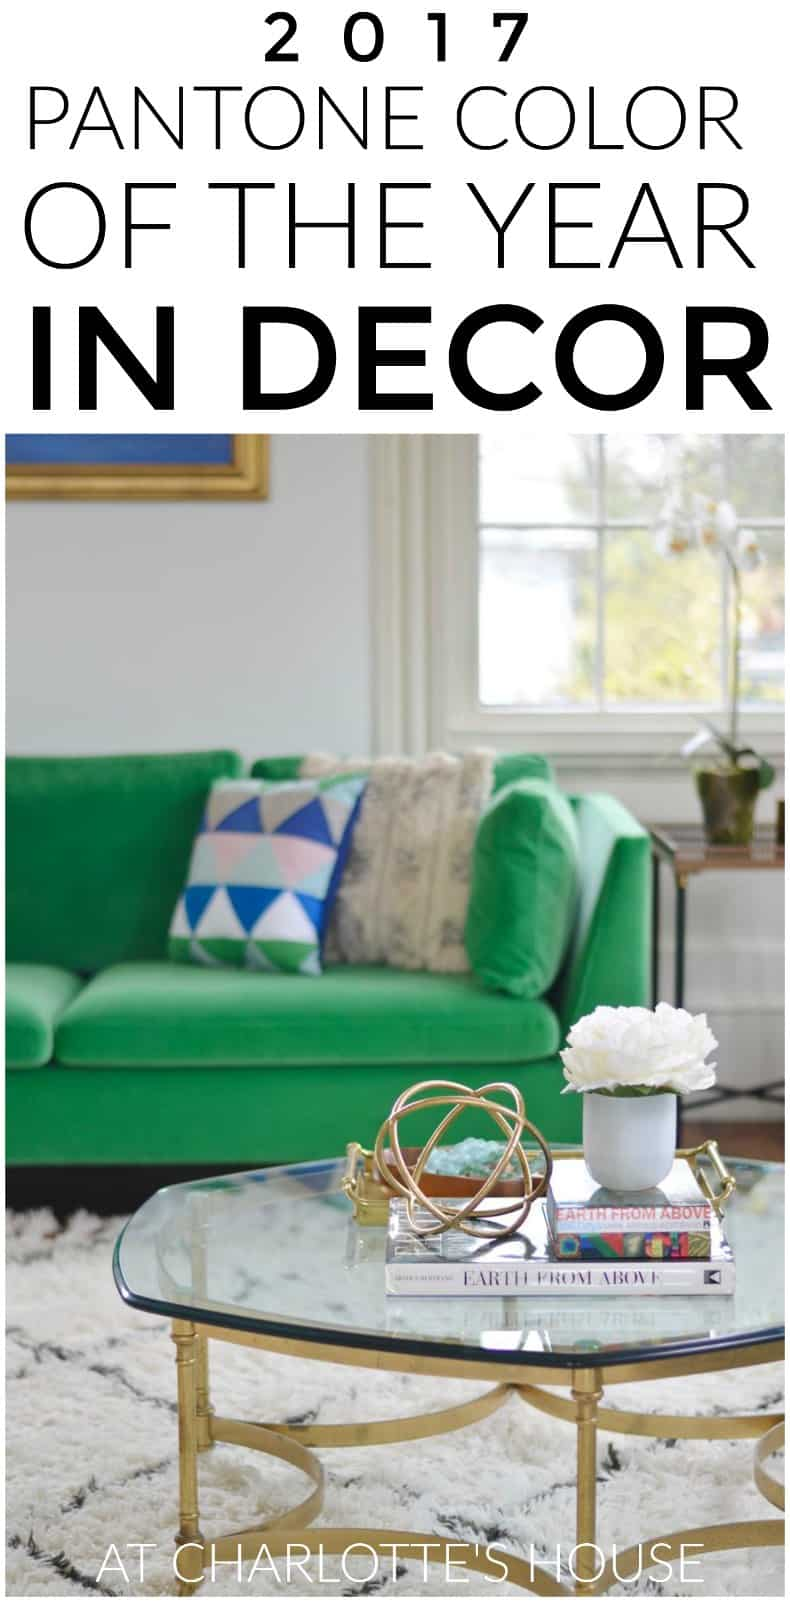 pantone-color-of-the-year-in-decor